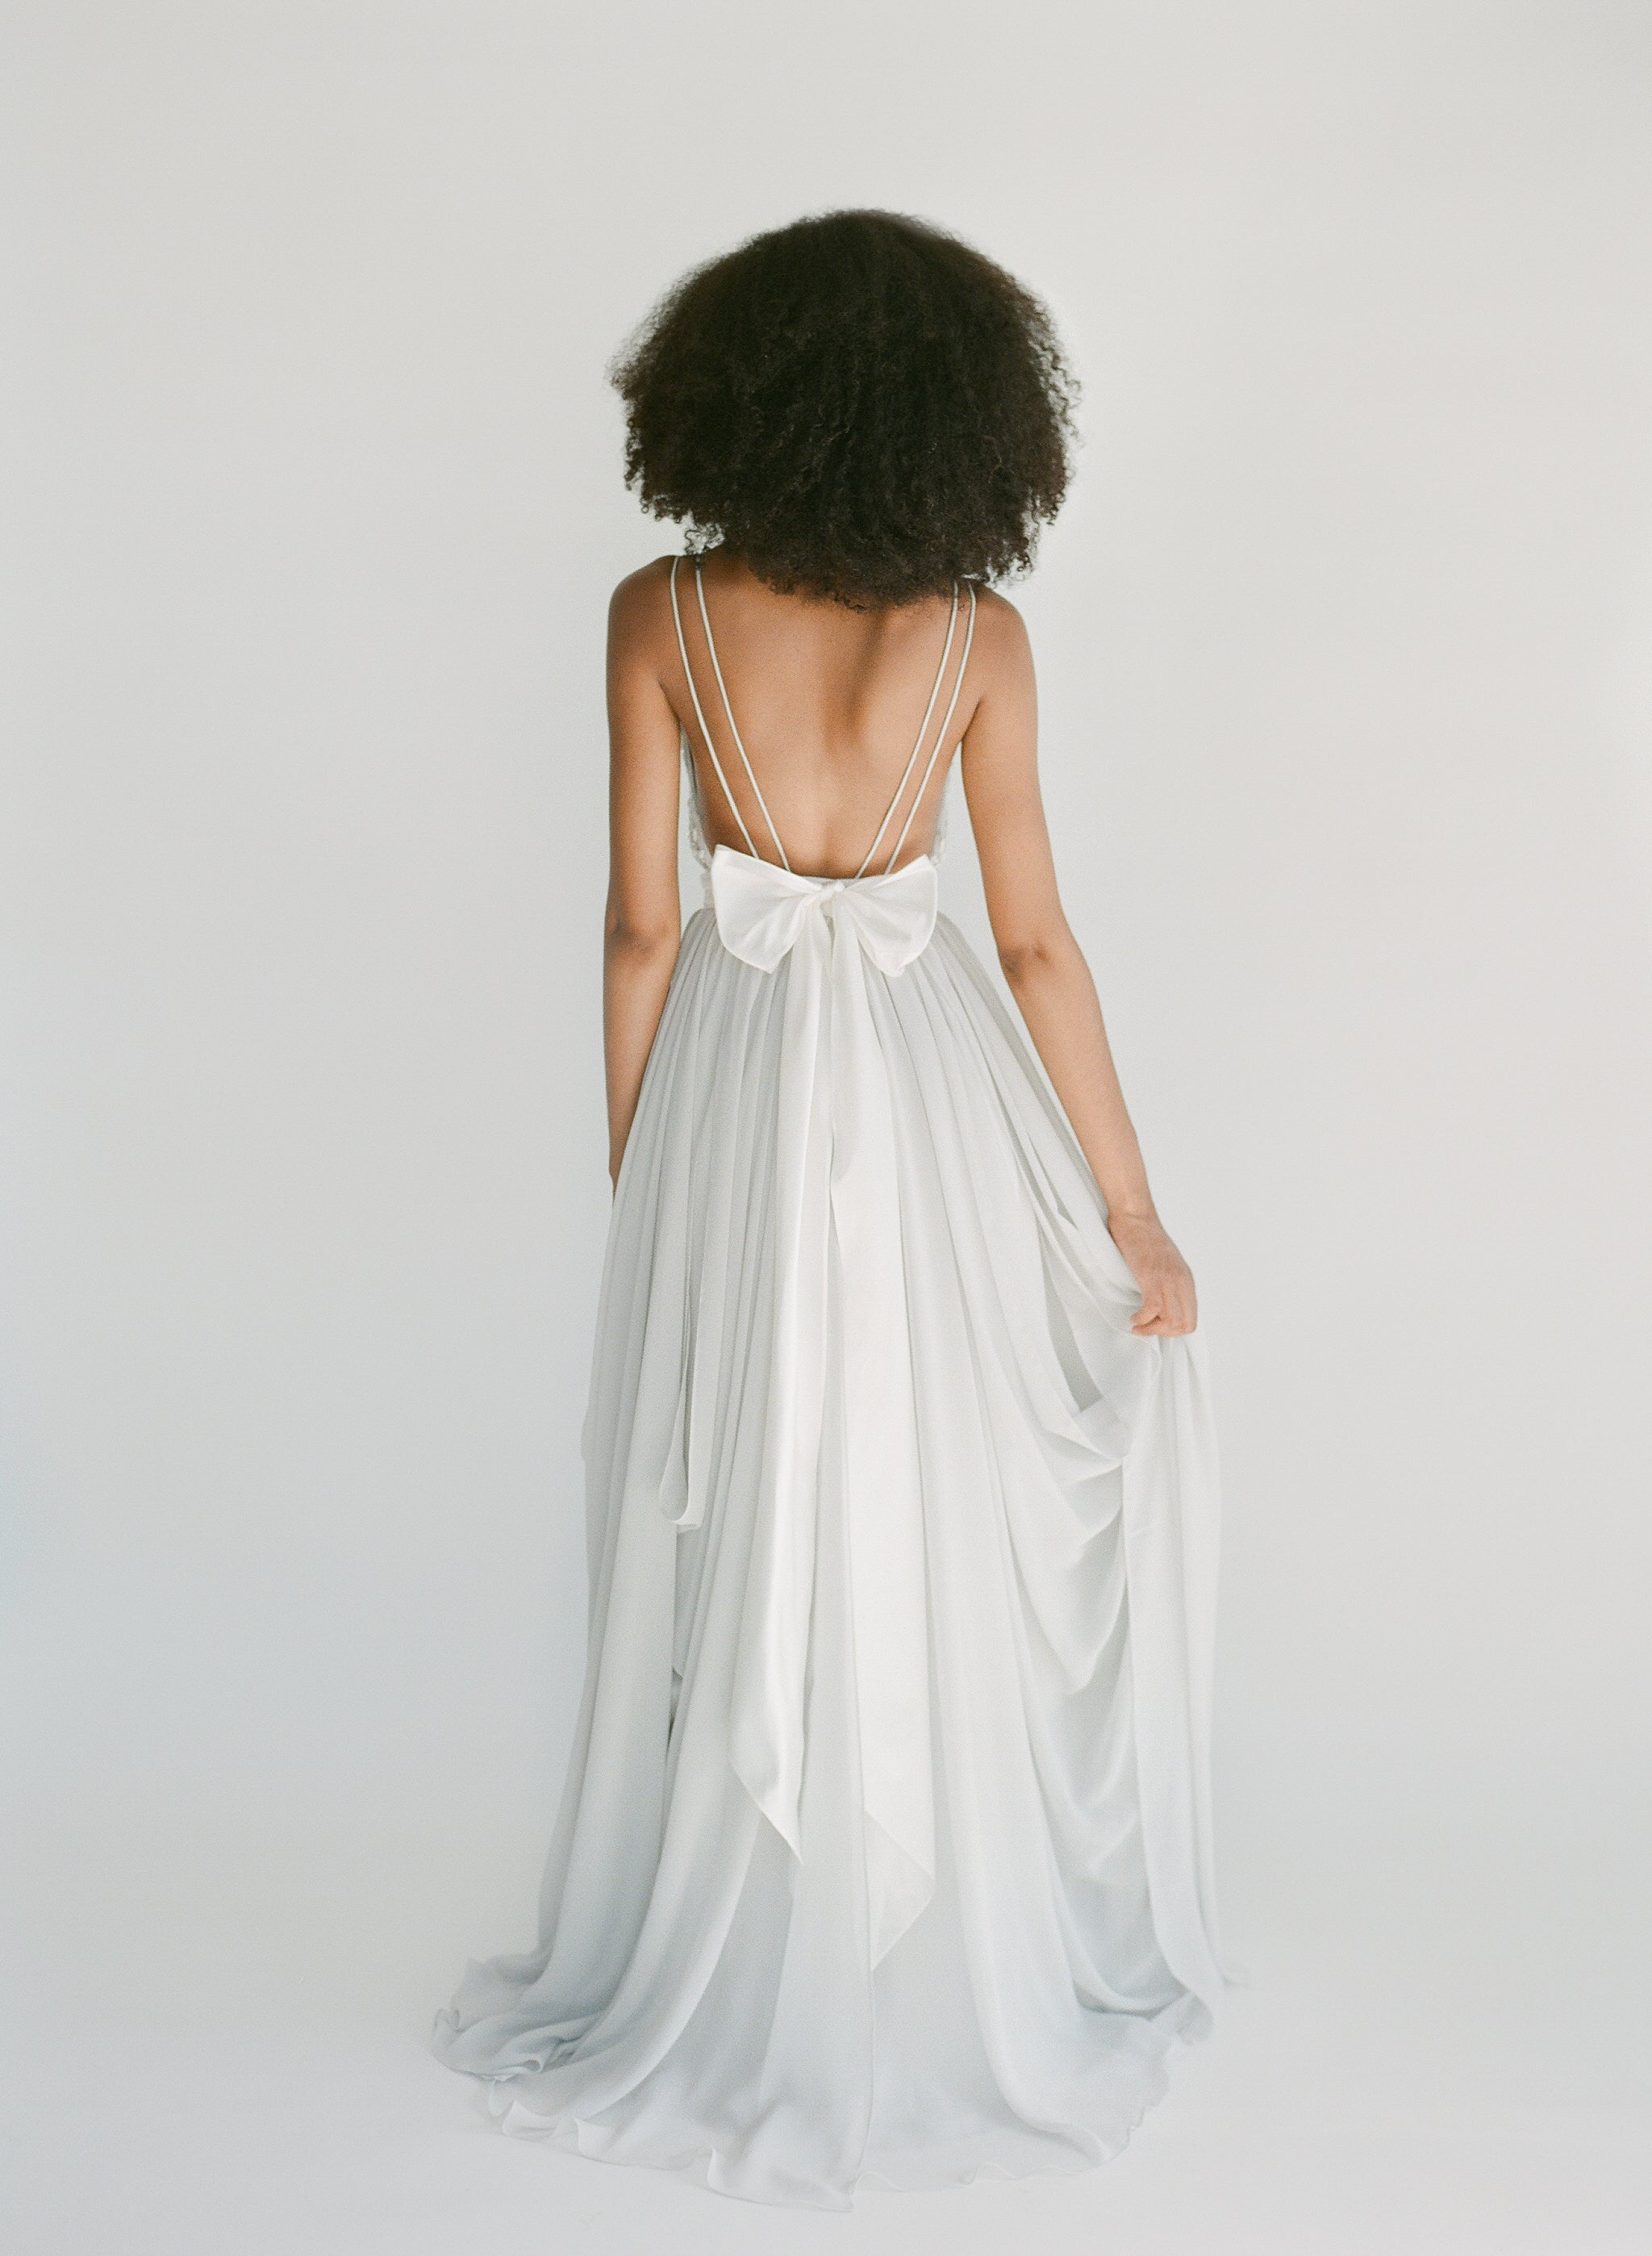 Ethically made silver beaded wedding dress with double straps and an open back